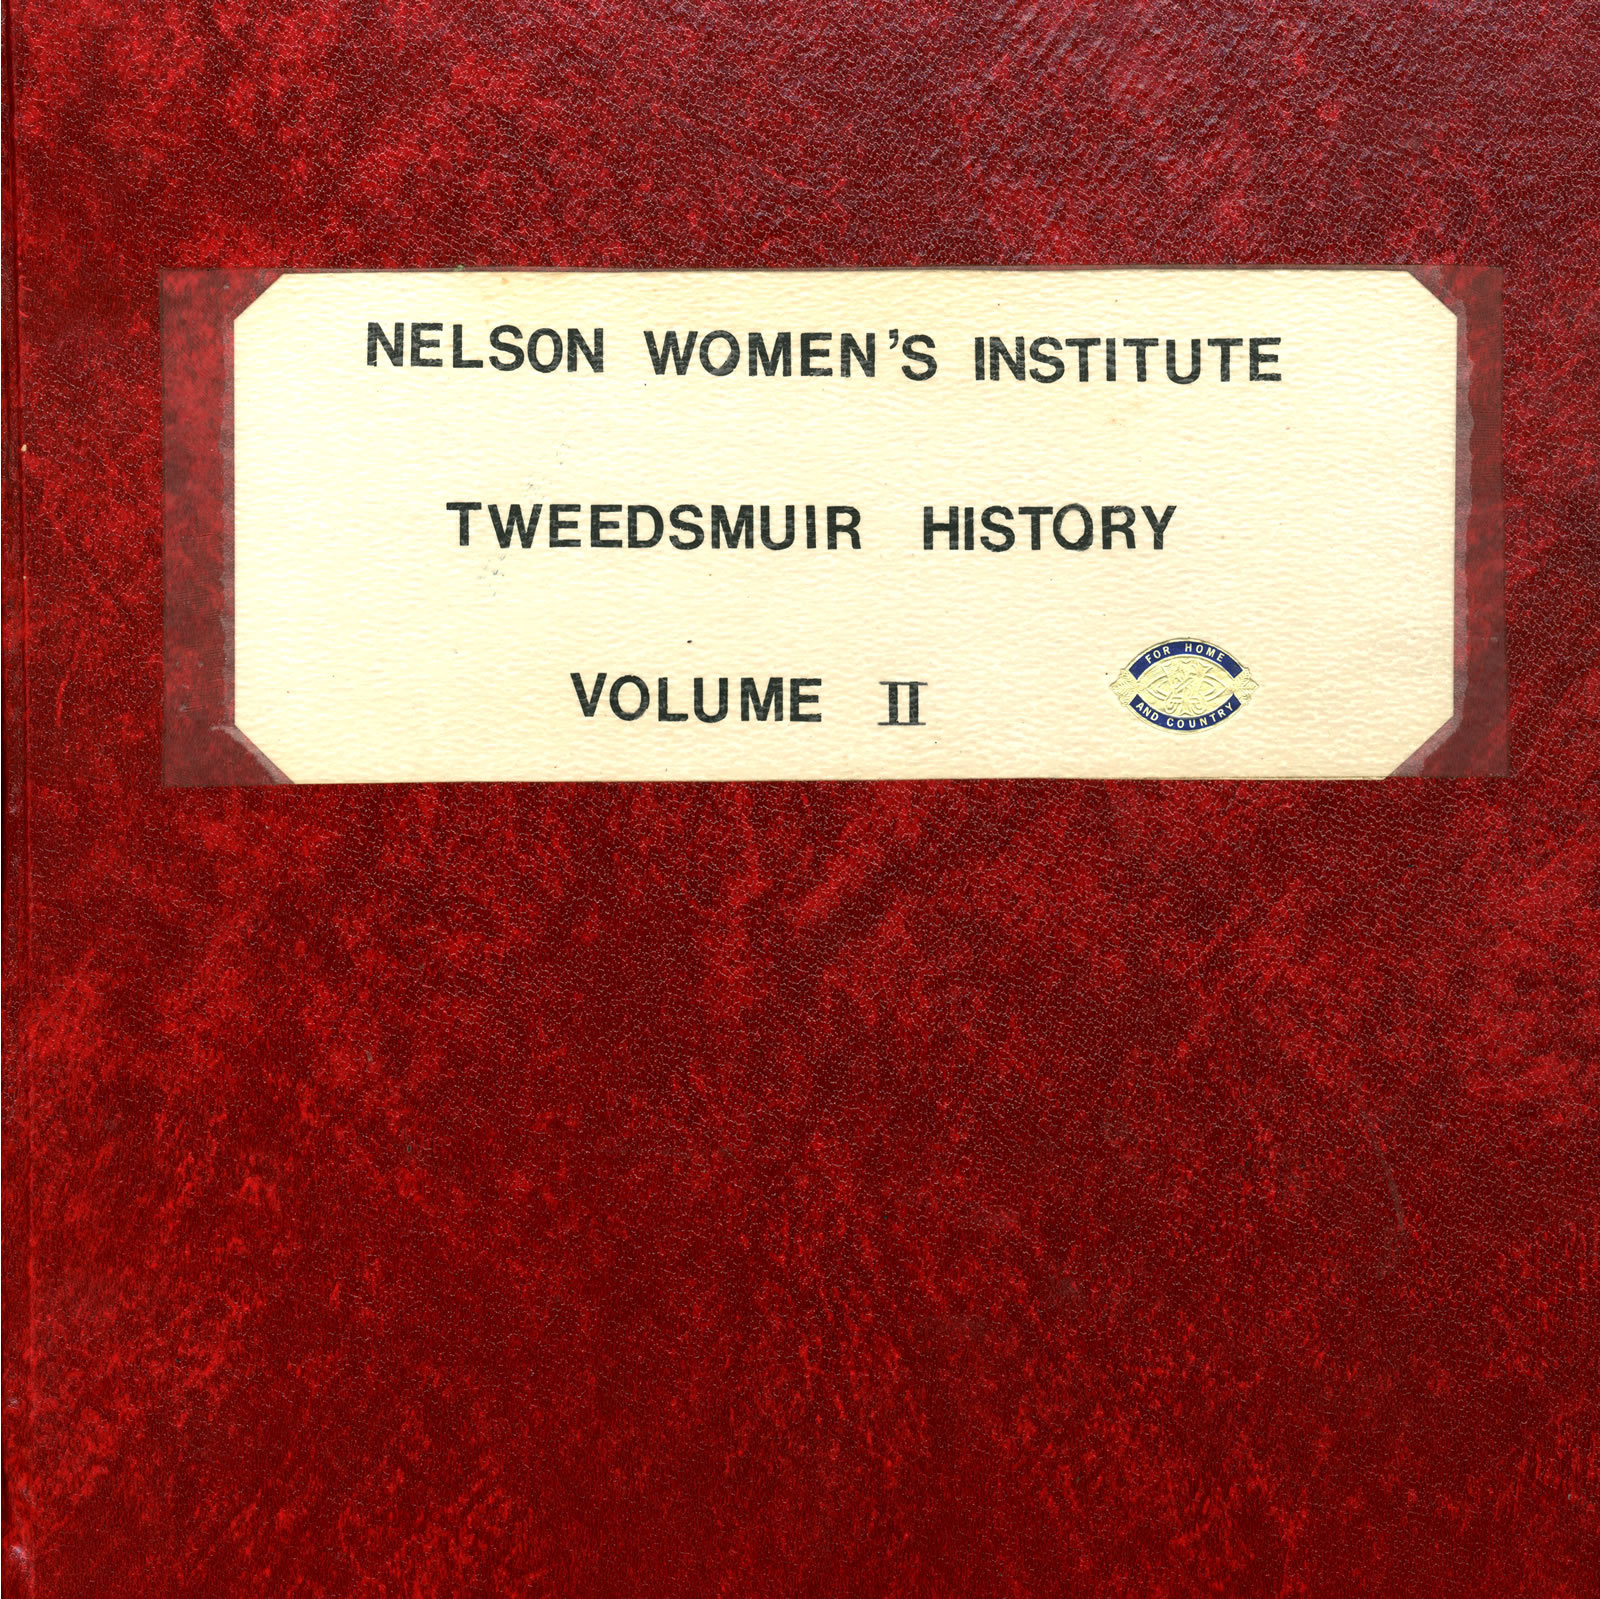 Nelson Women's Institute Tweedsmuir History, Book II (of 3 Books, currently available on OurOntario.ca)